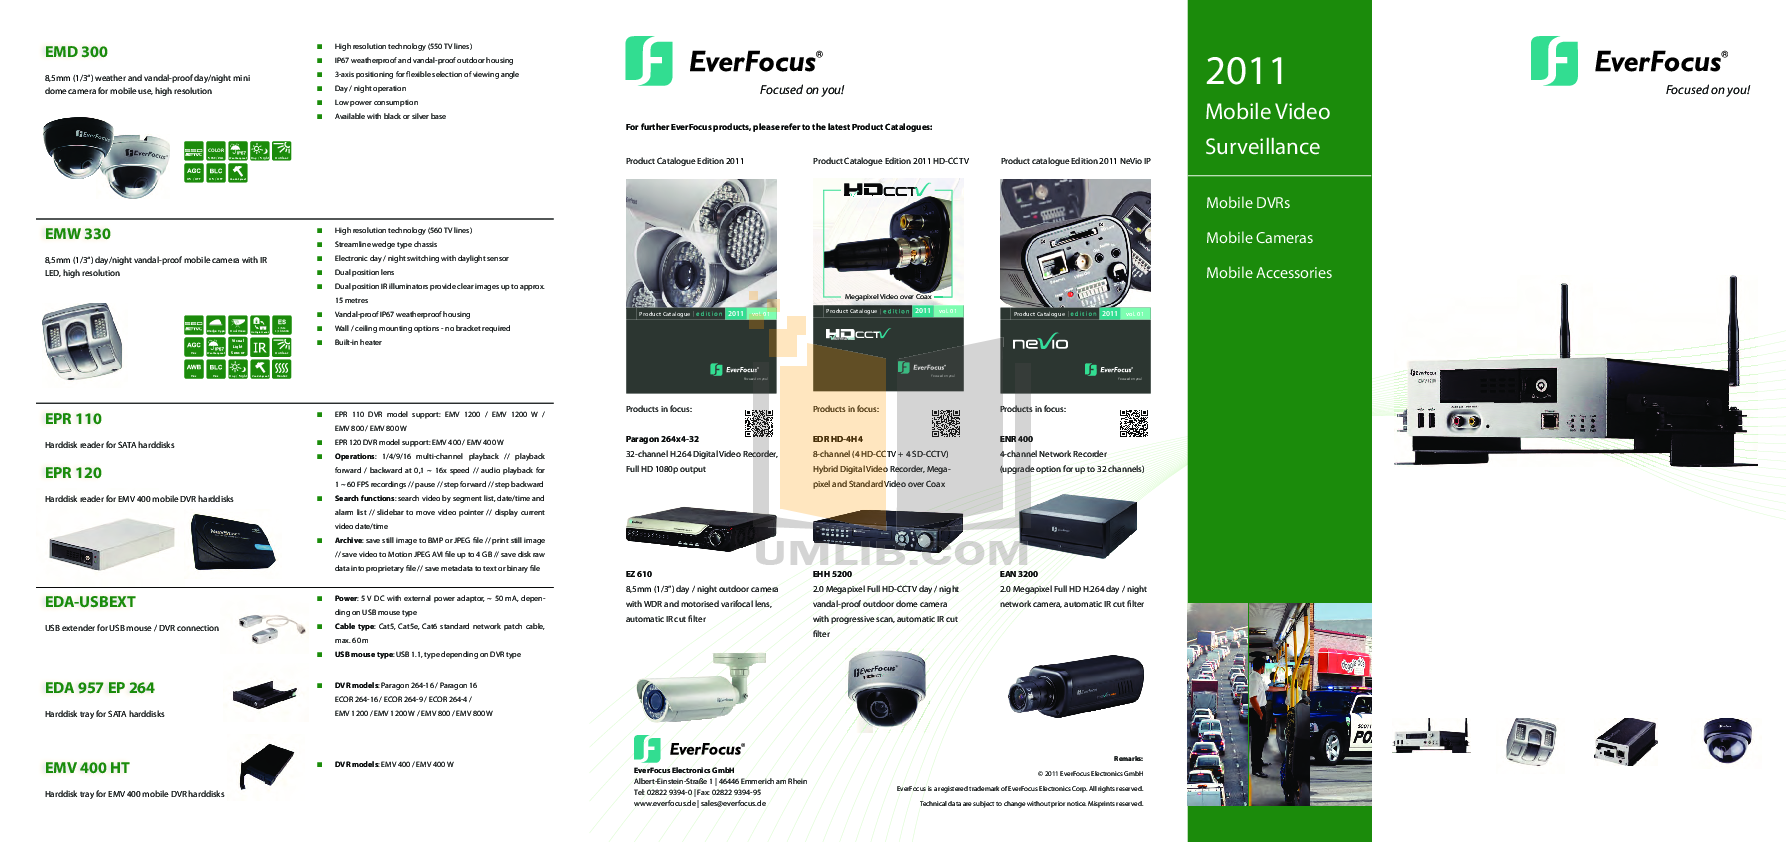 pdf for EverFocus Security Camera EAN3200 manual